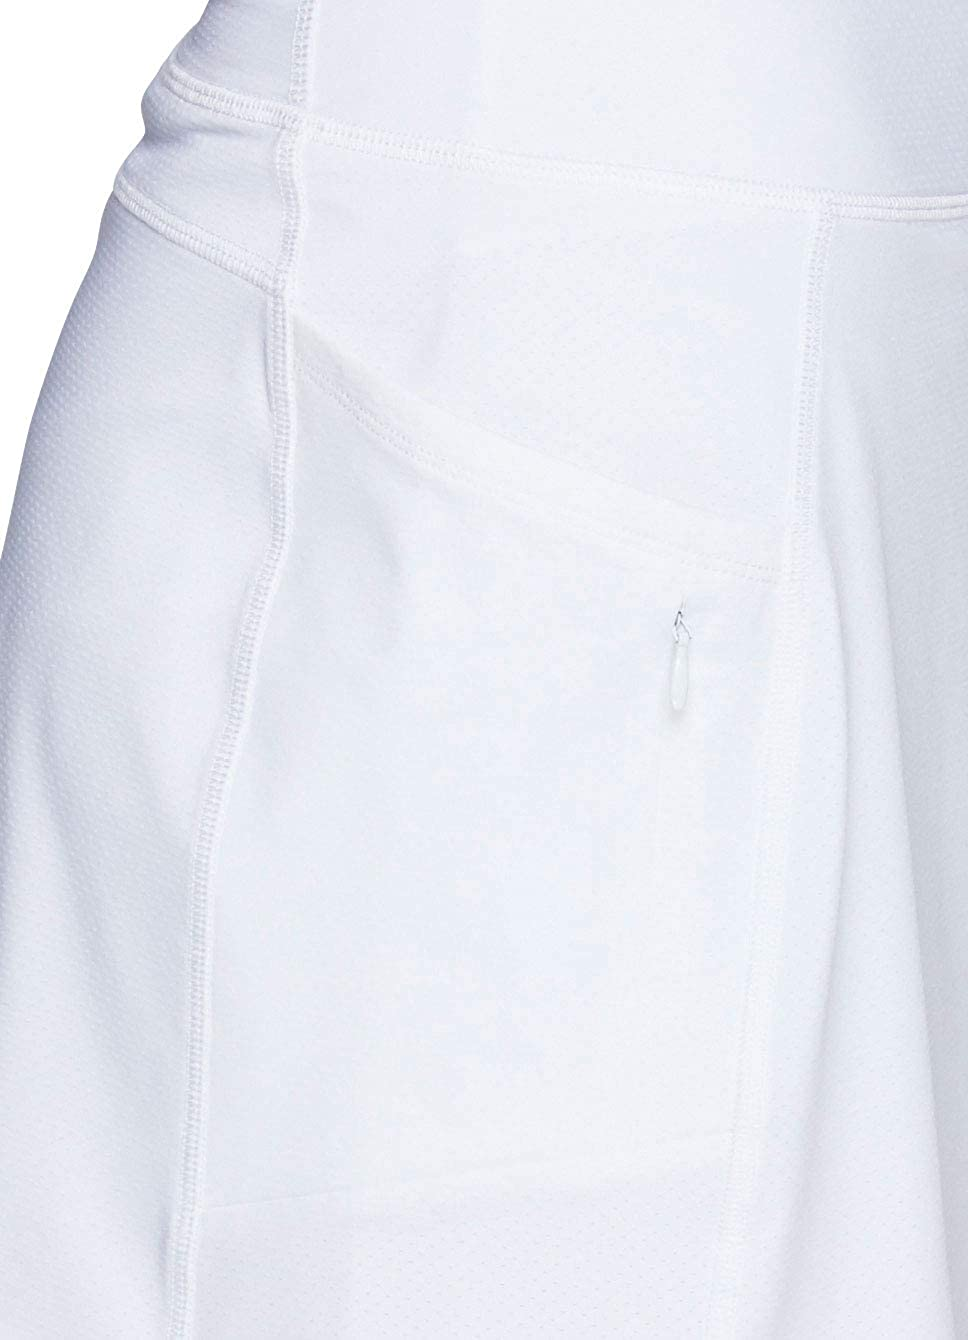 RBX Active Womens Fashion Stretch Knit Flat Front Golf//Tennis Athletic Skort with Attached Bike Short and Pockets